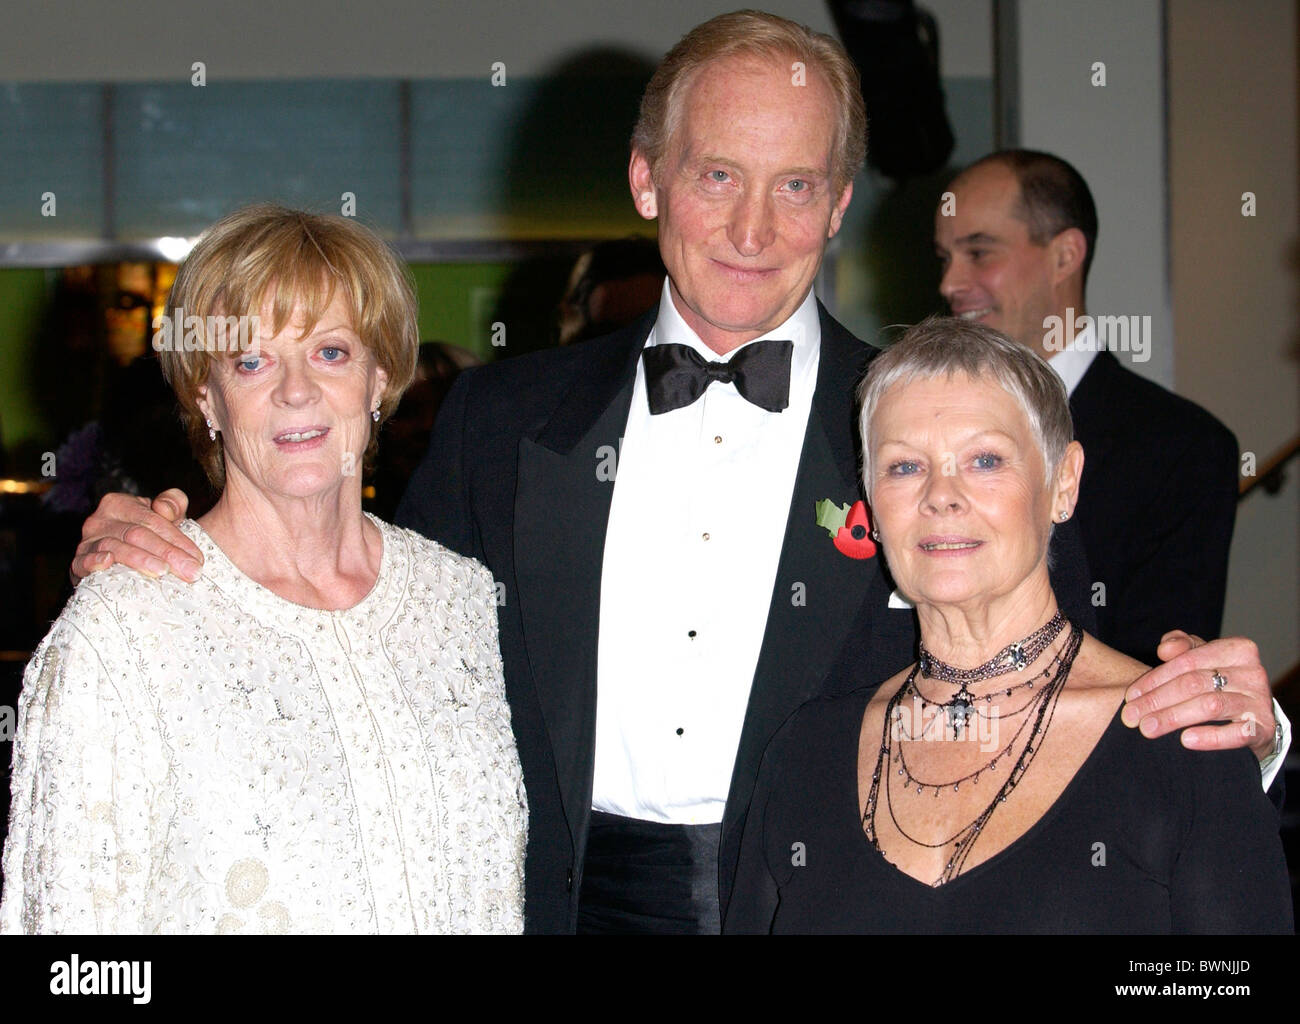 Charles Dance director of 'Ladies in Lavender' with actresses Dame Maggie Smith and Dame Judi Dench in London Stock Photo